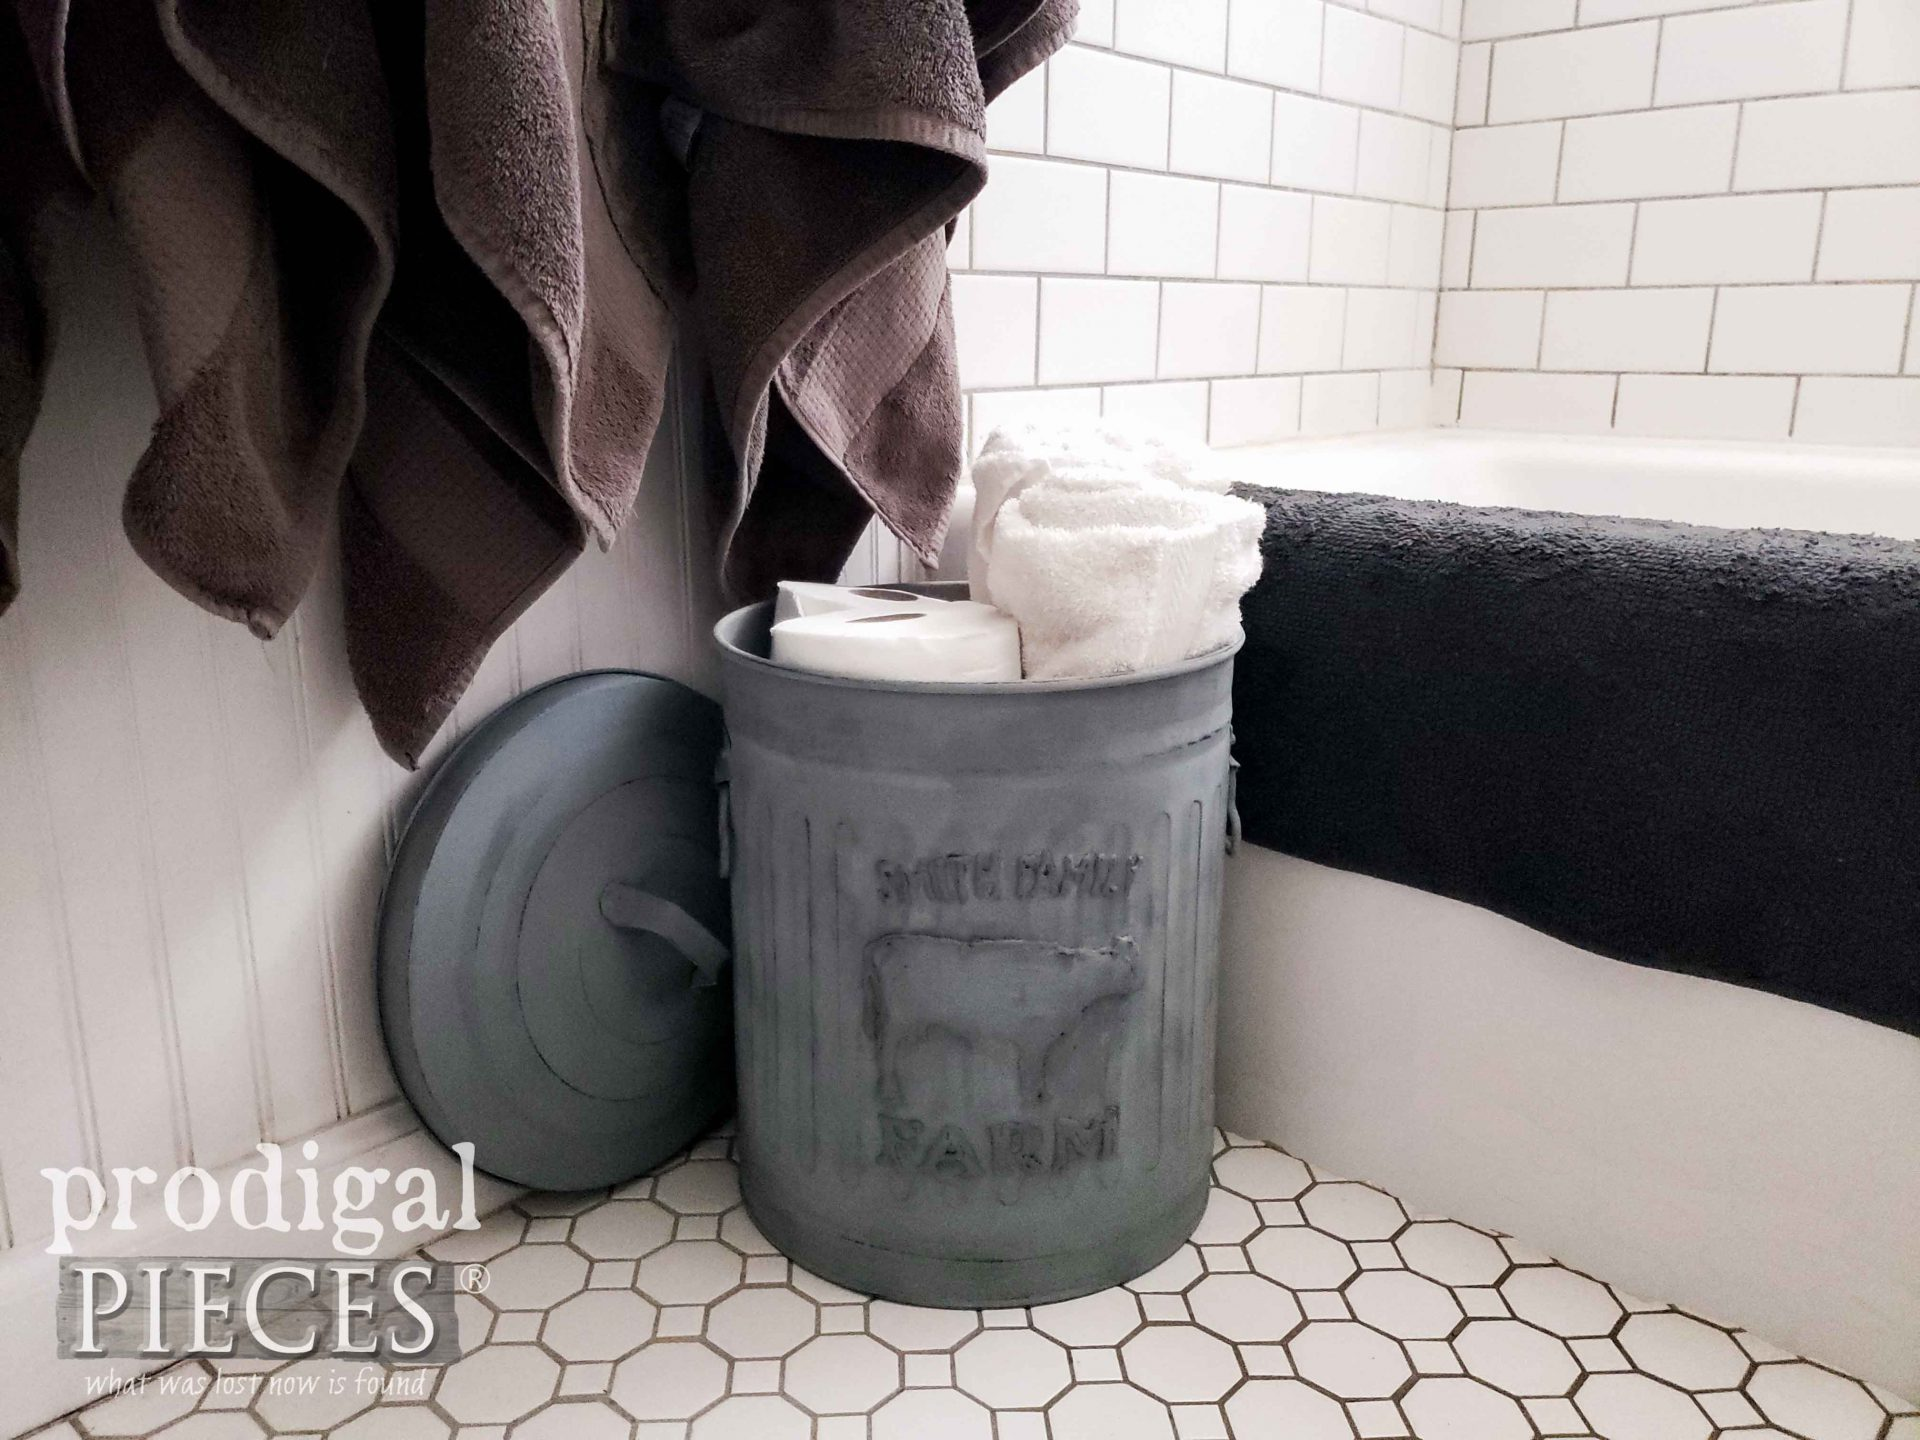 Rustic Embossed Farmhouse Dairy Bathroom Storage from Upcycled Trash Can | prodigalpieces.com #prodigalpieces #bathroom #home #diy #homedecor